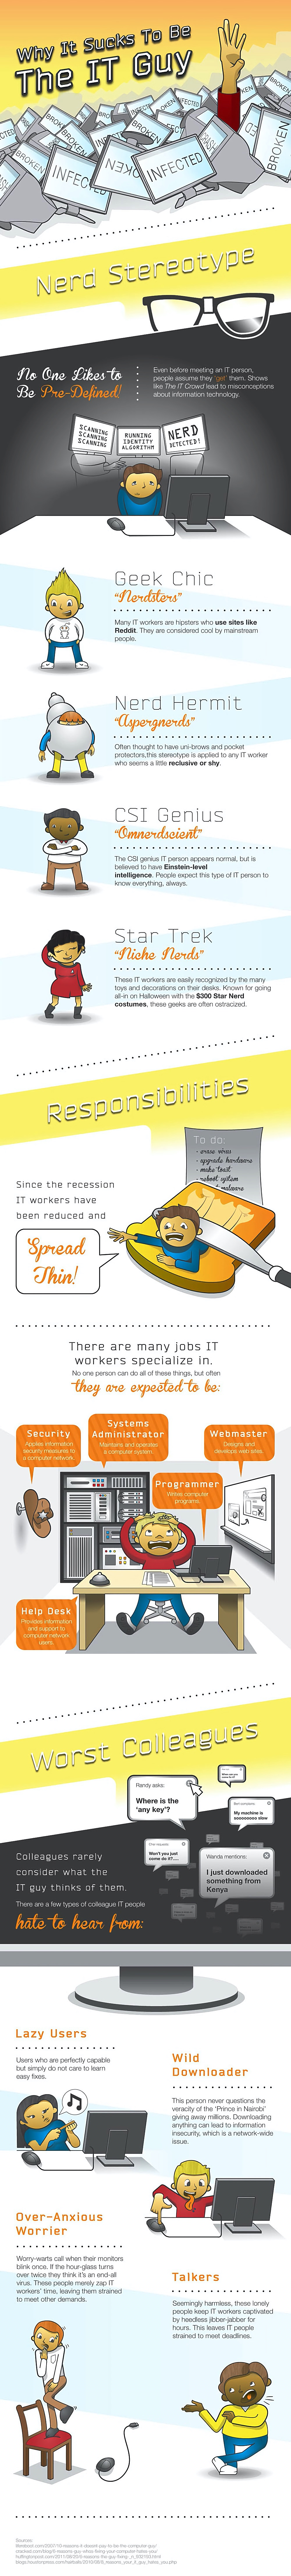 INFOGRAPHIC: Why It Sucks to Be the IT Guy